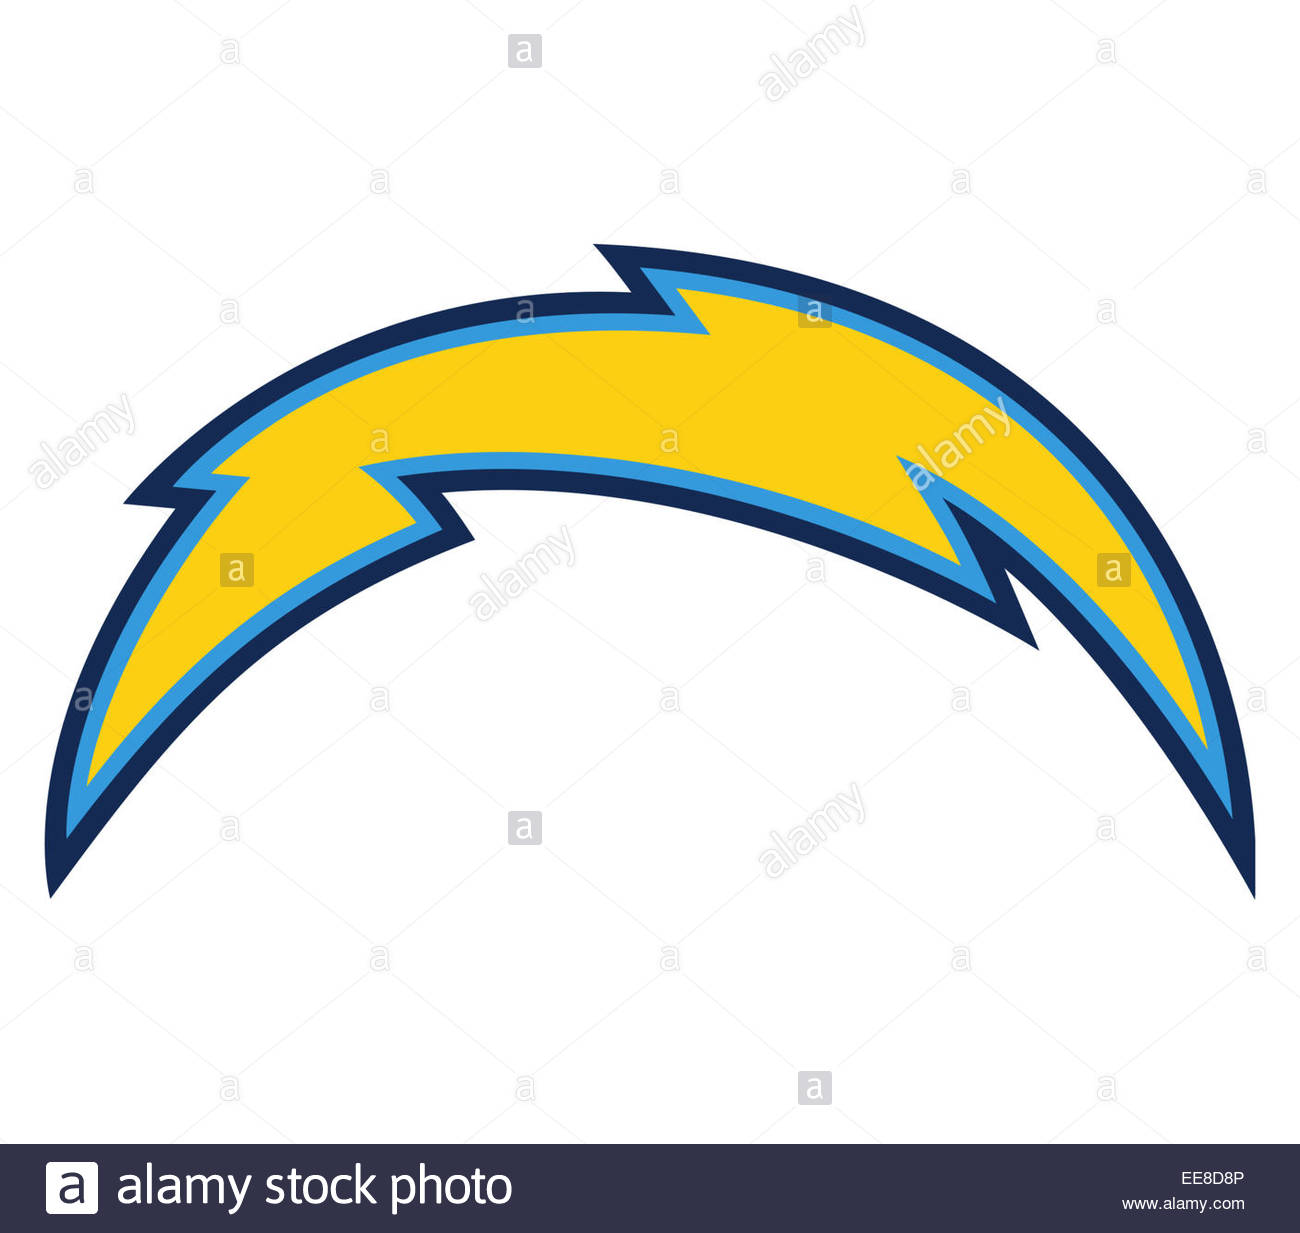 San Diego Chargers Emblem: San Diego Chargers Icon Symbol Stock Photo: 77632710